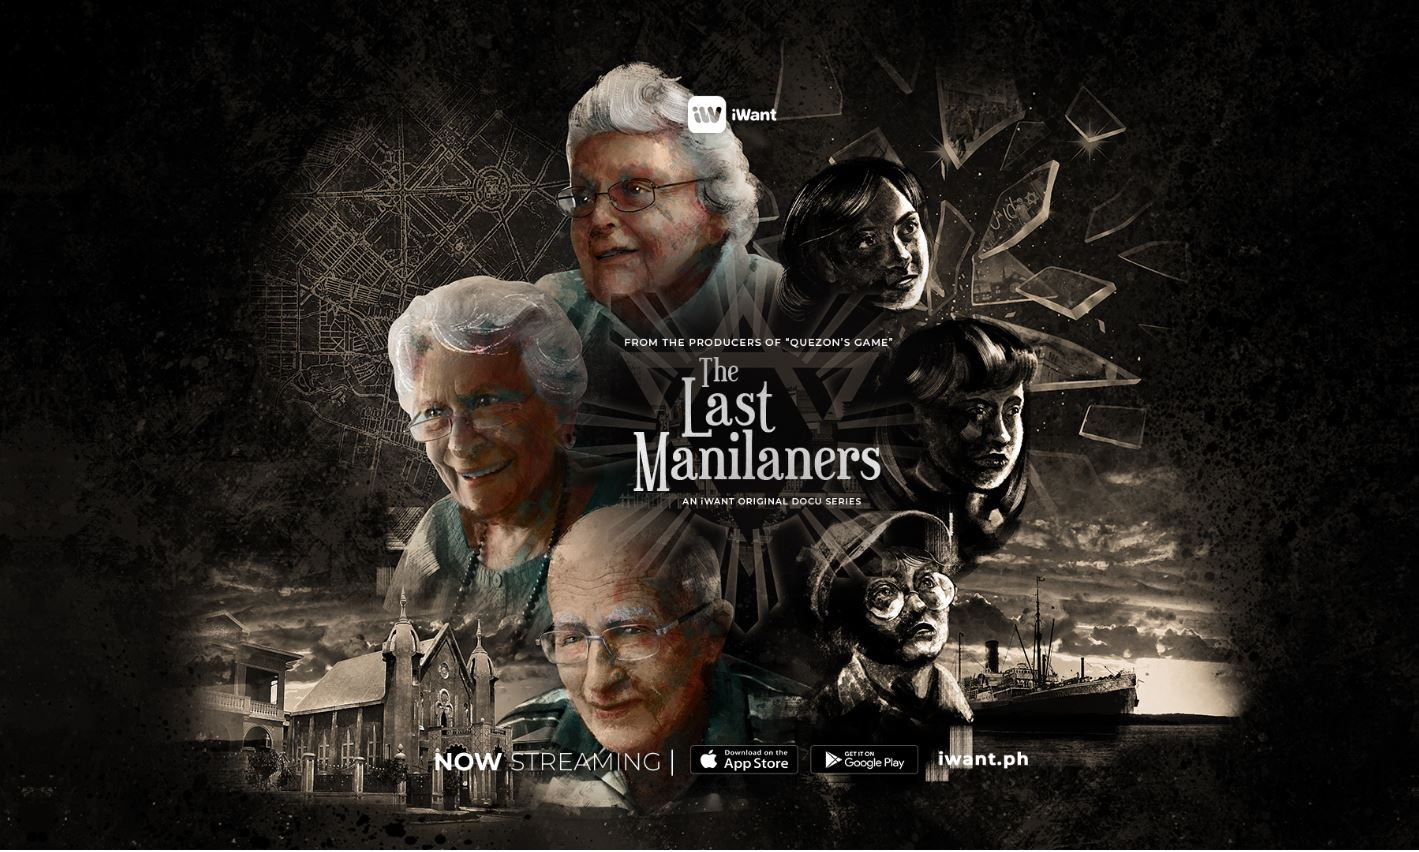 Holocaust survivors rescued by PH share their stories in iWant's 'The Last Manilaners'